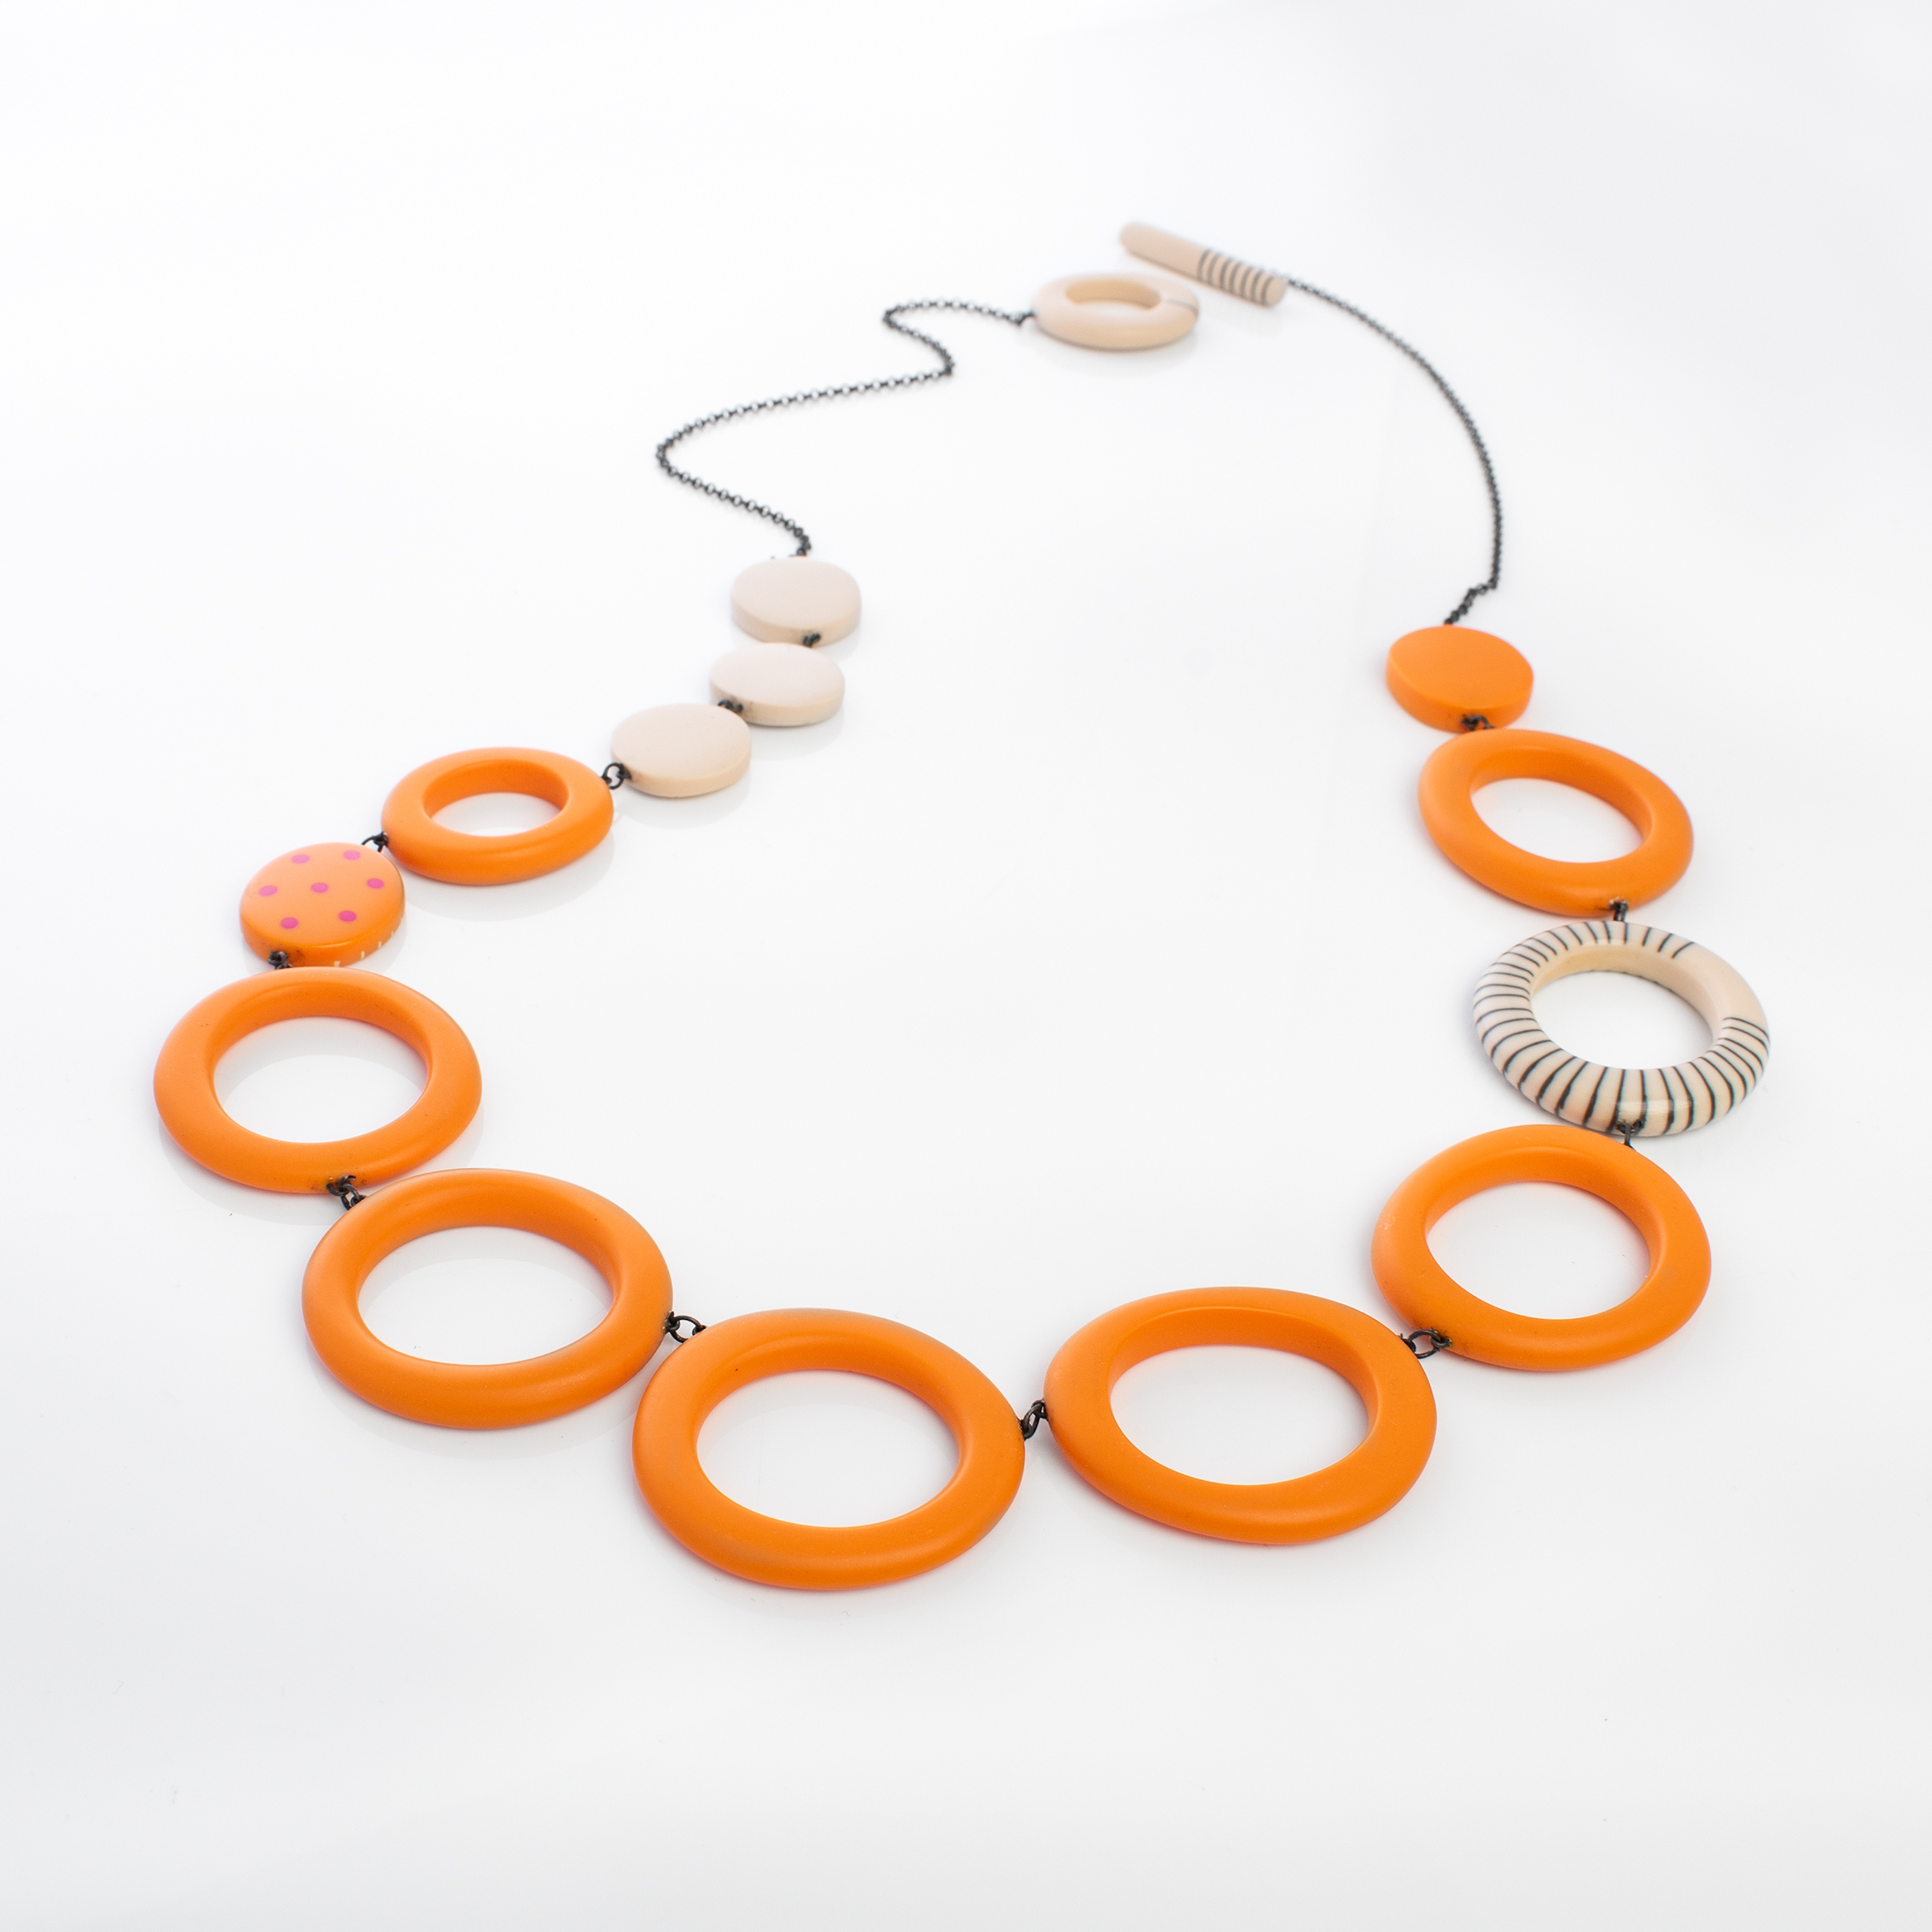 Reversible Hoops Necklace